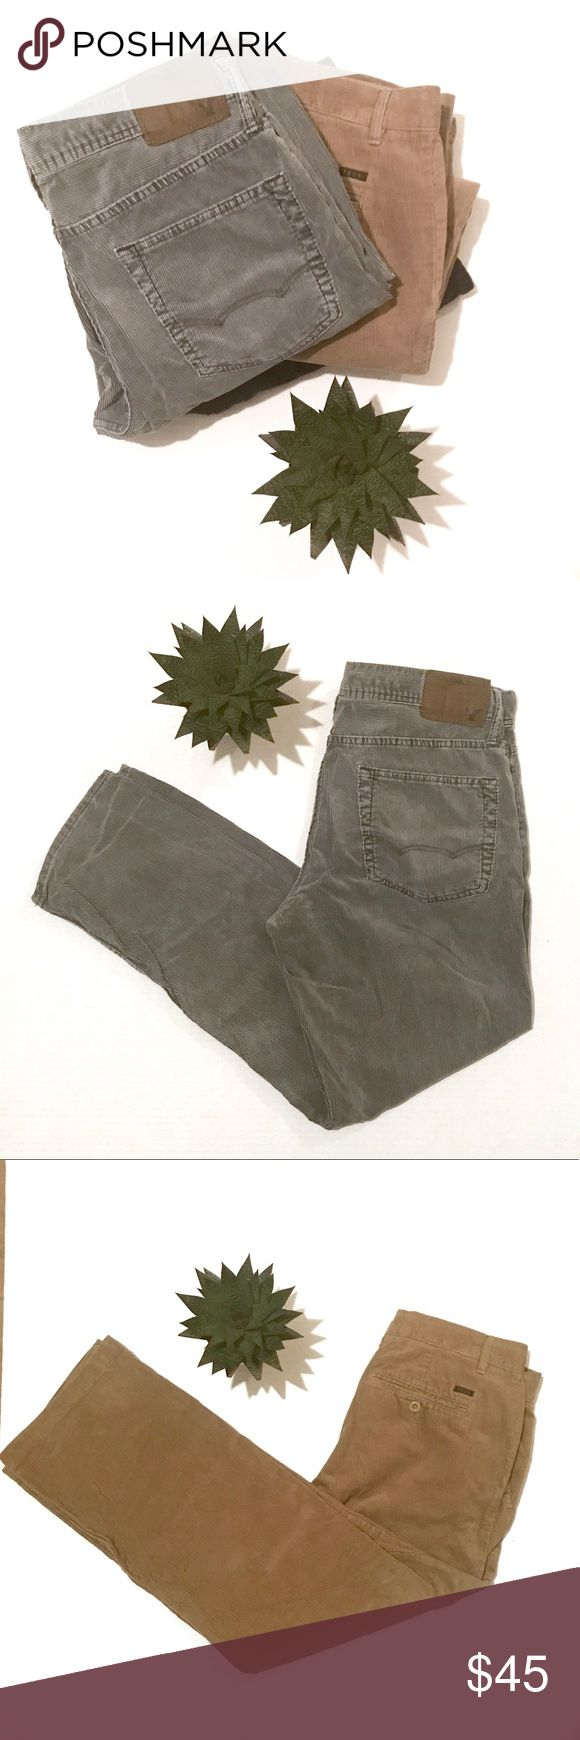 Bundle x3// men's cords 2 pairs Izod (Black + Camel) and 1 pair American Eagle Outfitters (Grey/Green). Size x3 US Mens 34/30 && gently worn/washed. {Will not separate-thank you!} Bundle to save! Multiple Pants Corduroy